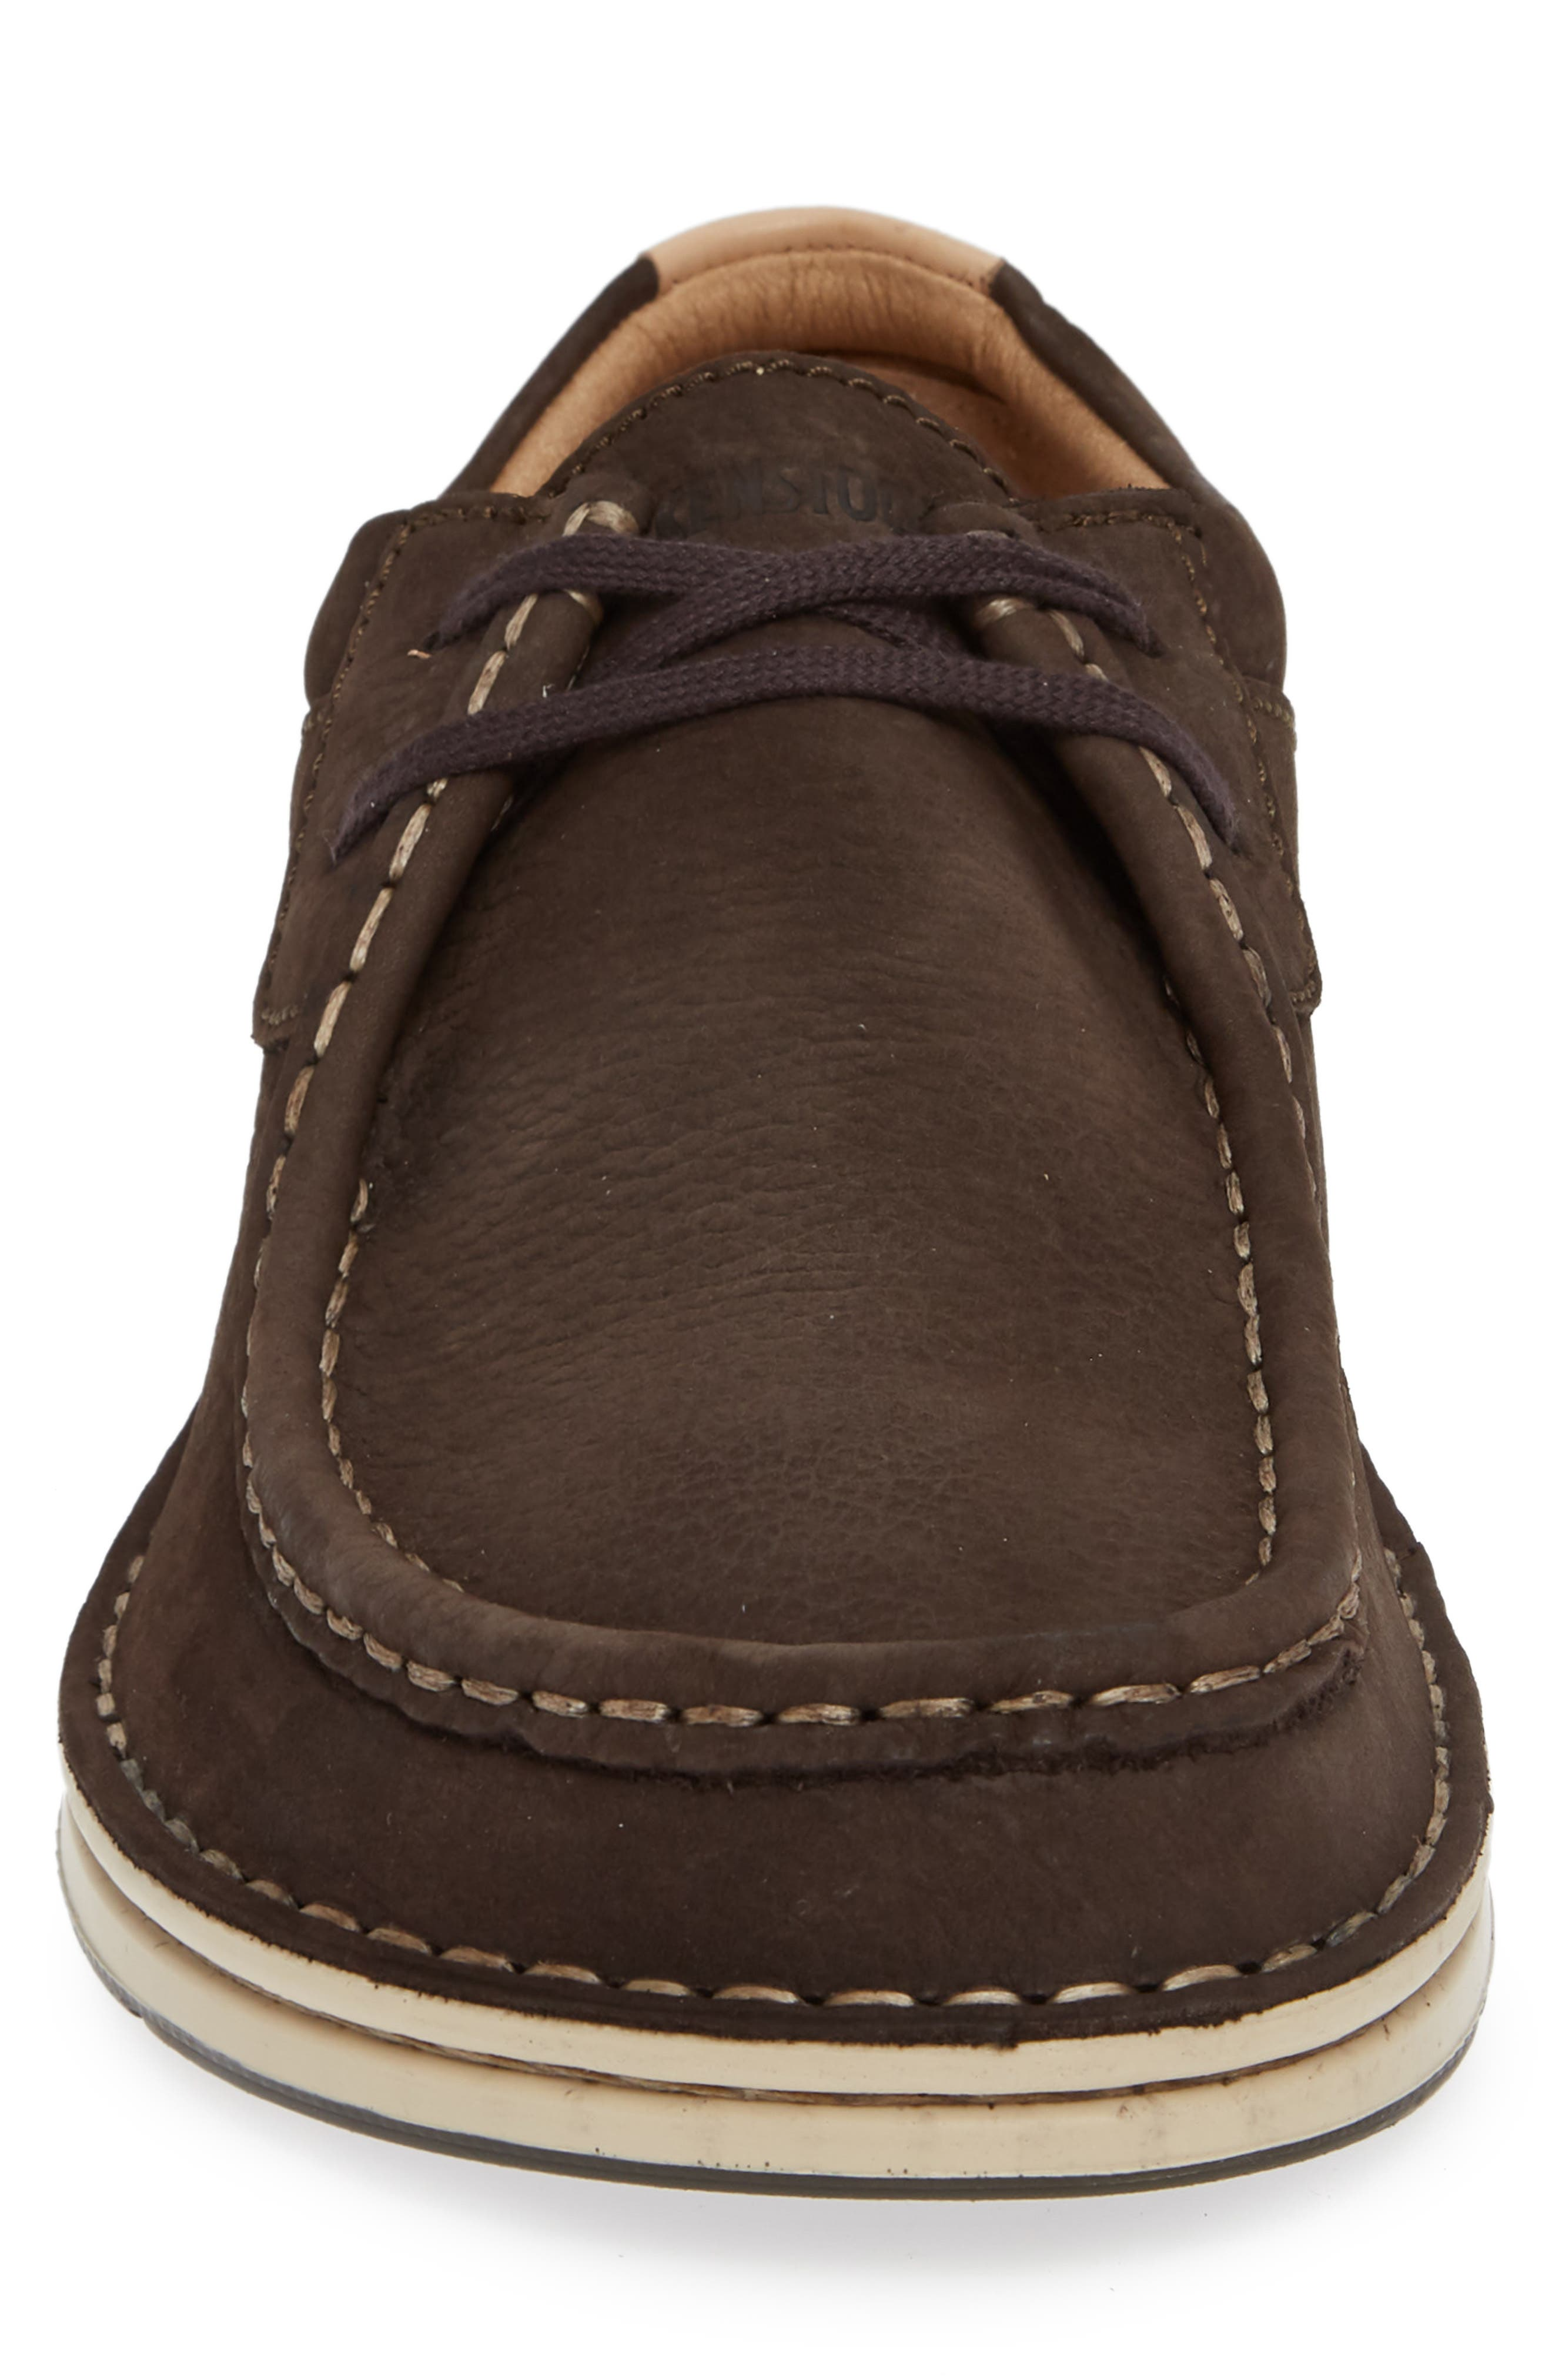 'Pasadena' Lace-Up Moccasin,                             Alternate thumbnail 4, color,                             BROWN